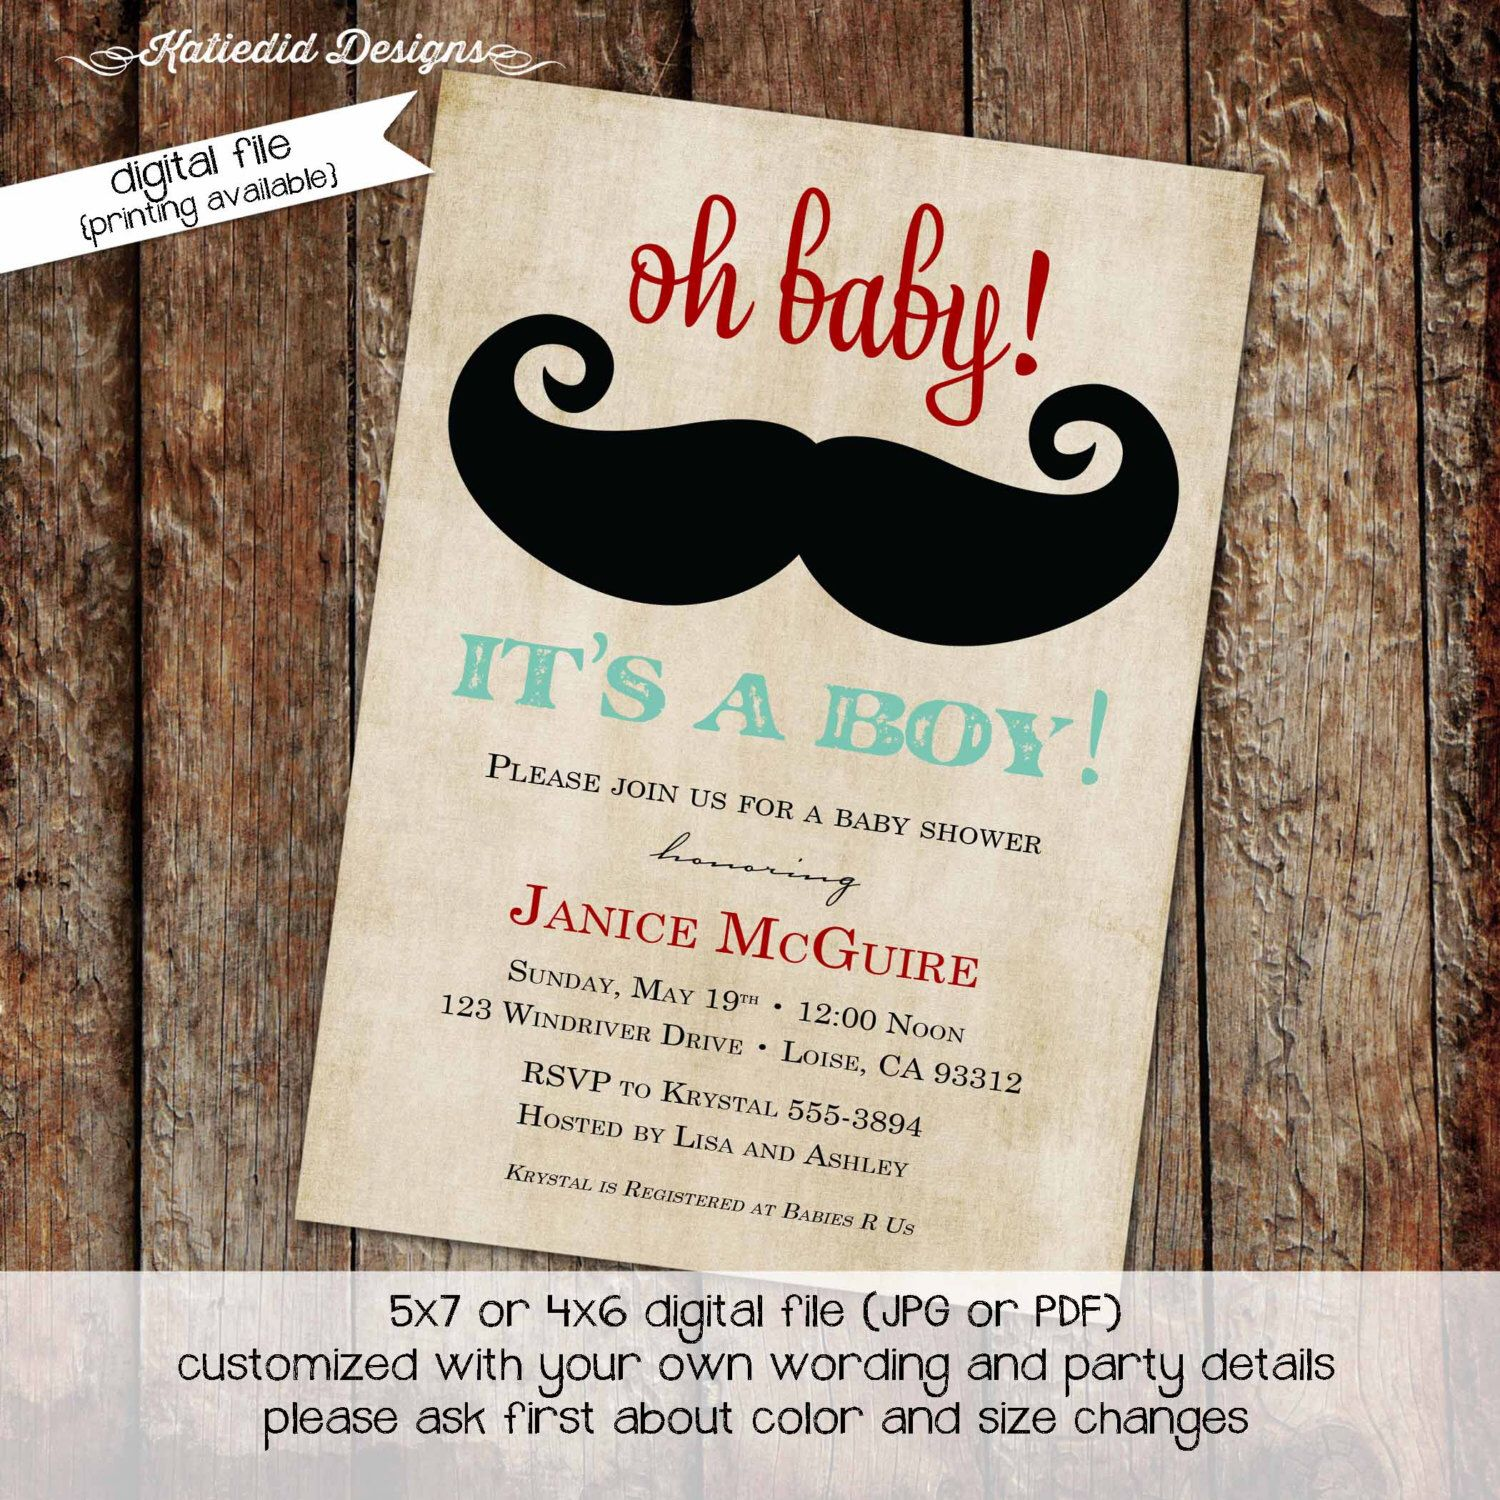 Mustache baby shower invitation baby boy little man mustache bash mustache baby shower invitation baby boy little man mustache bash gentleman birthday party christening item filmwisefo Image collections